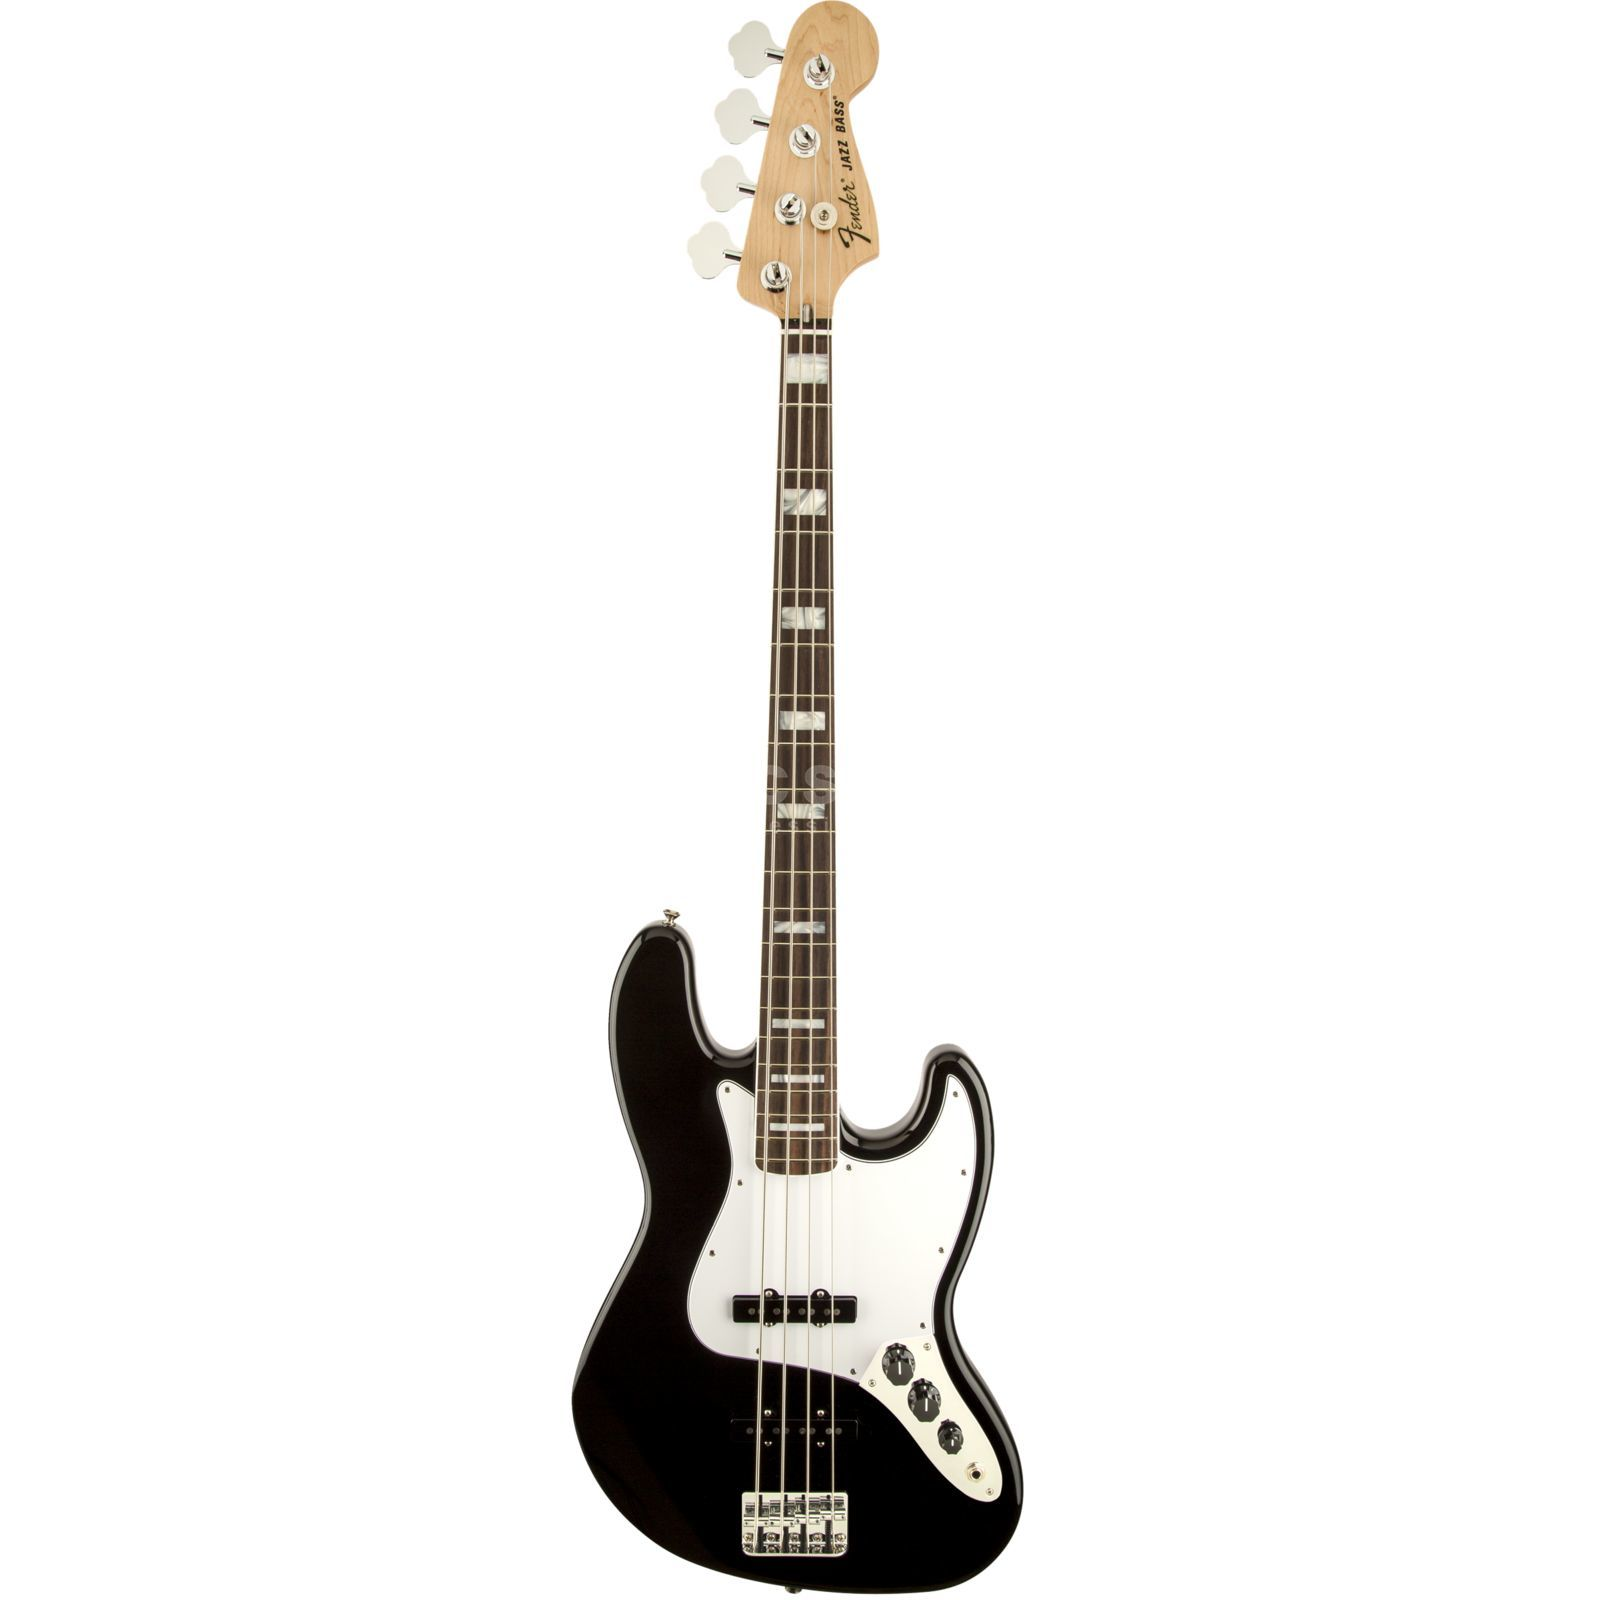 Fender Classic '70s Jazz Bass RW Black, Gigbag Изображение товара